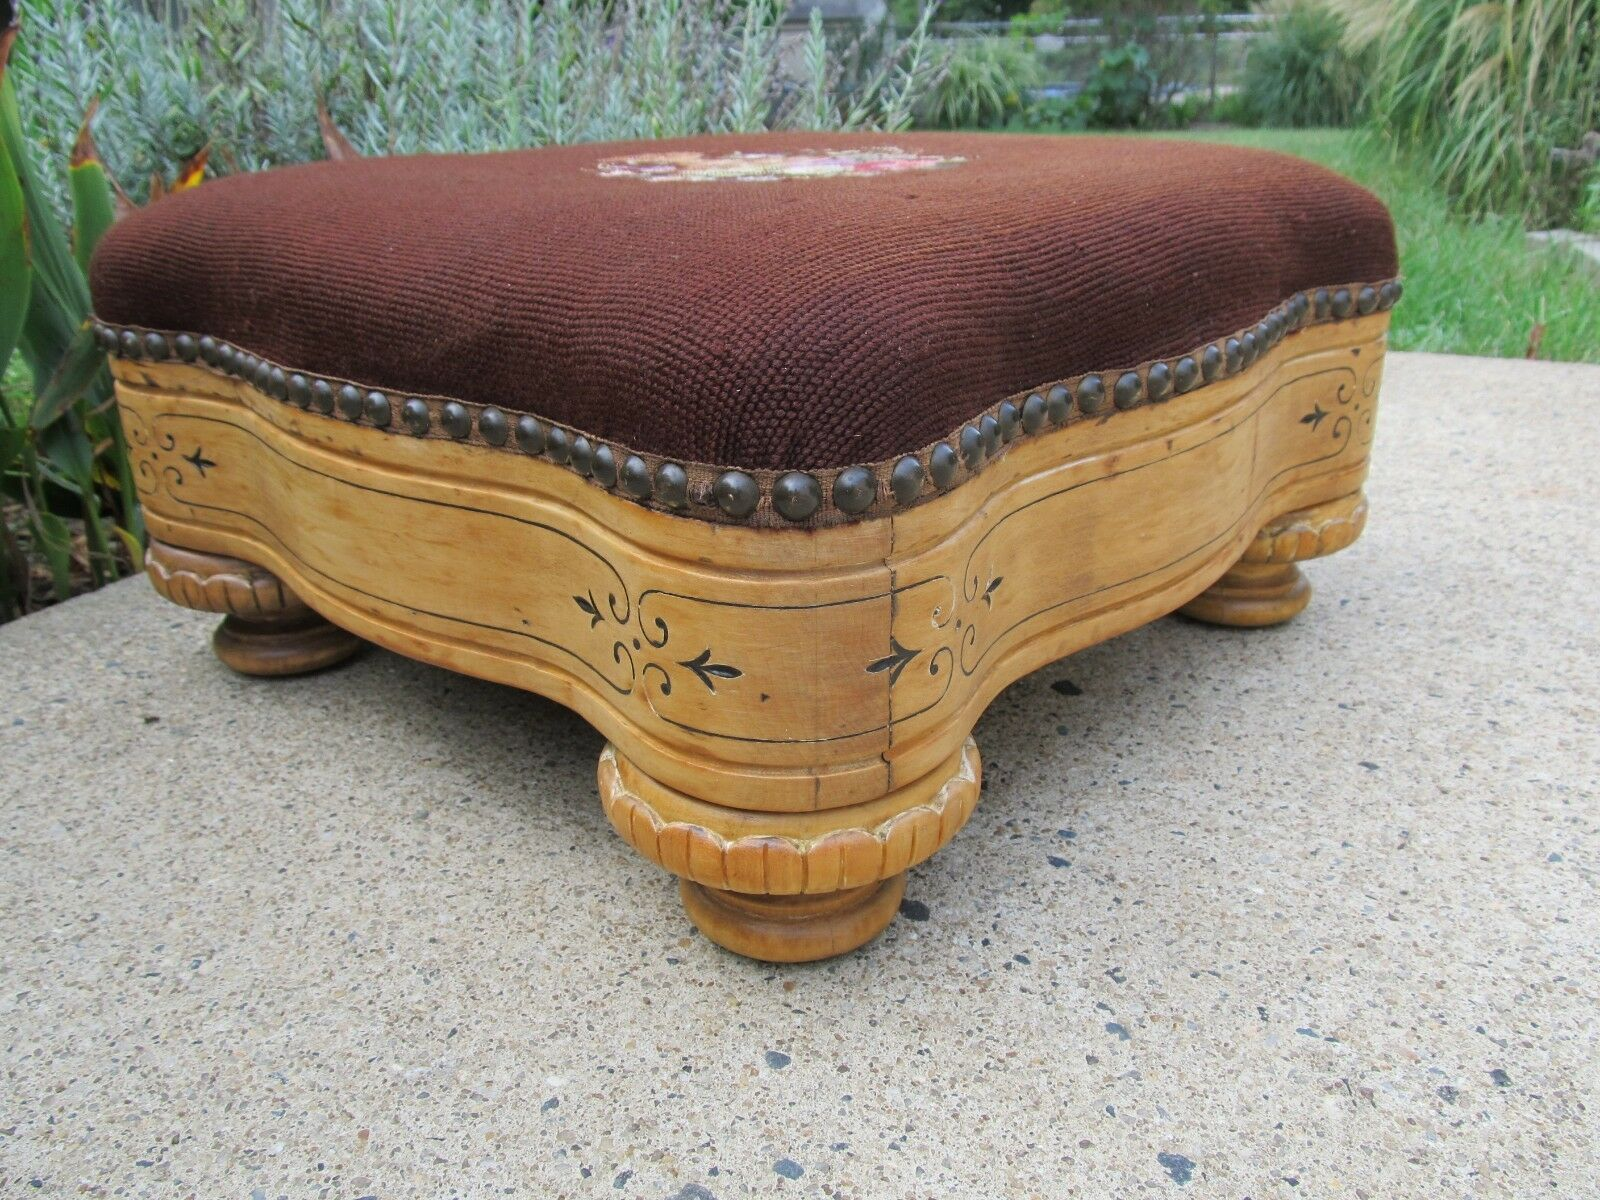 Antique Footstool with Needlepoint Top Nicely Detailed, Turned Legs